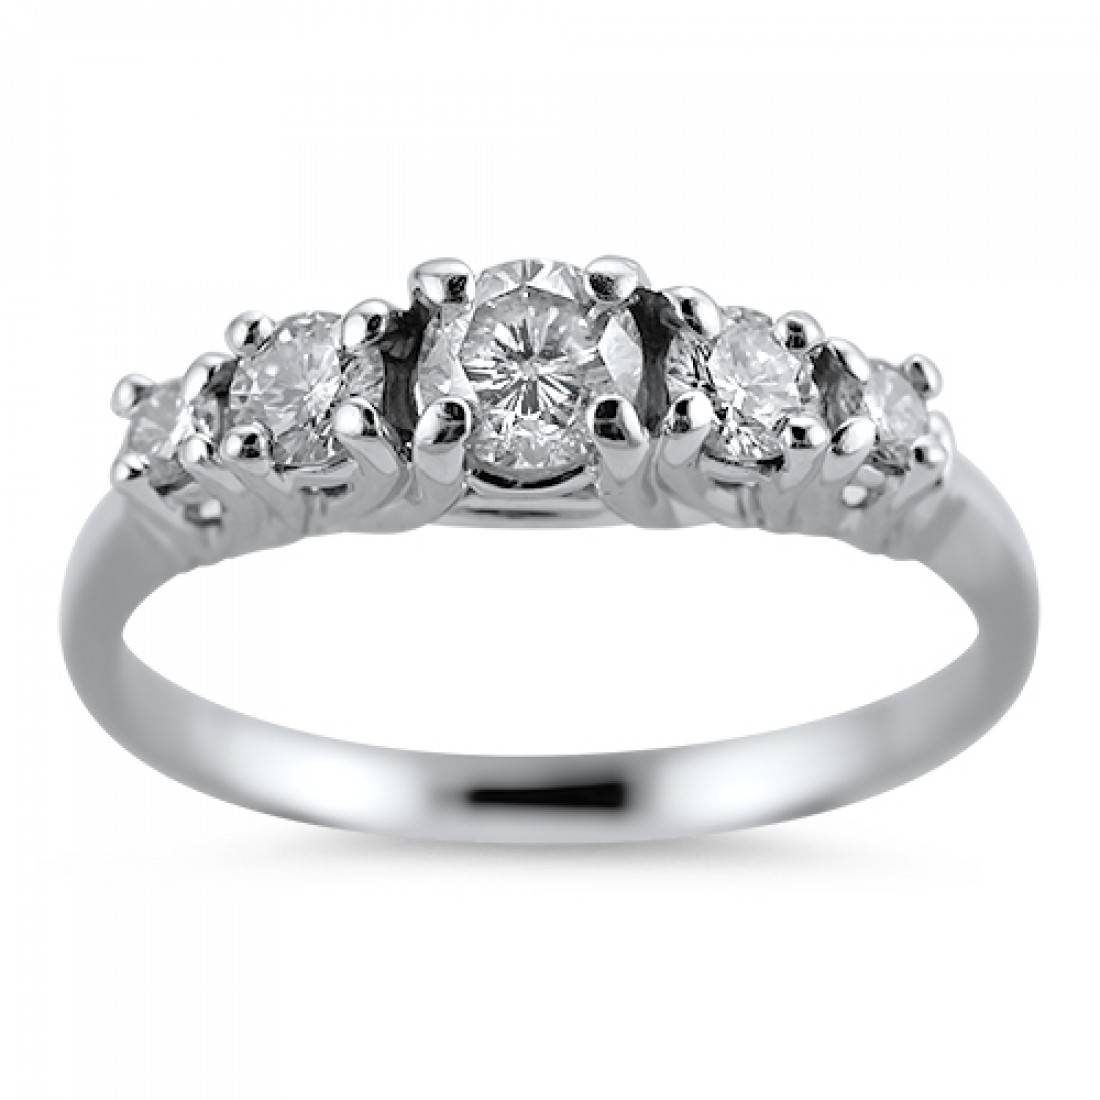 Springer's Jewelers | Maine & New Hampshire Jewelry Stores | Five Throughout Five Diamond Engagement Ring (View 13 of 15)